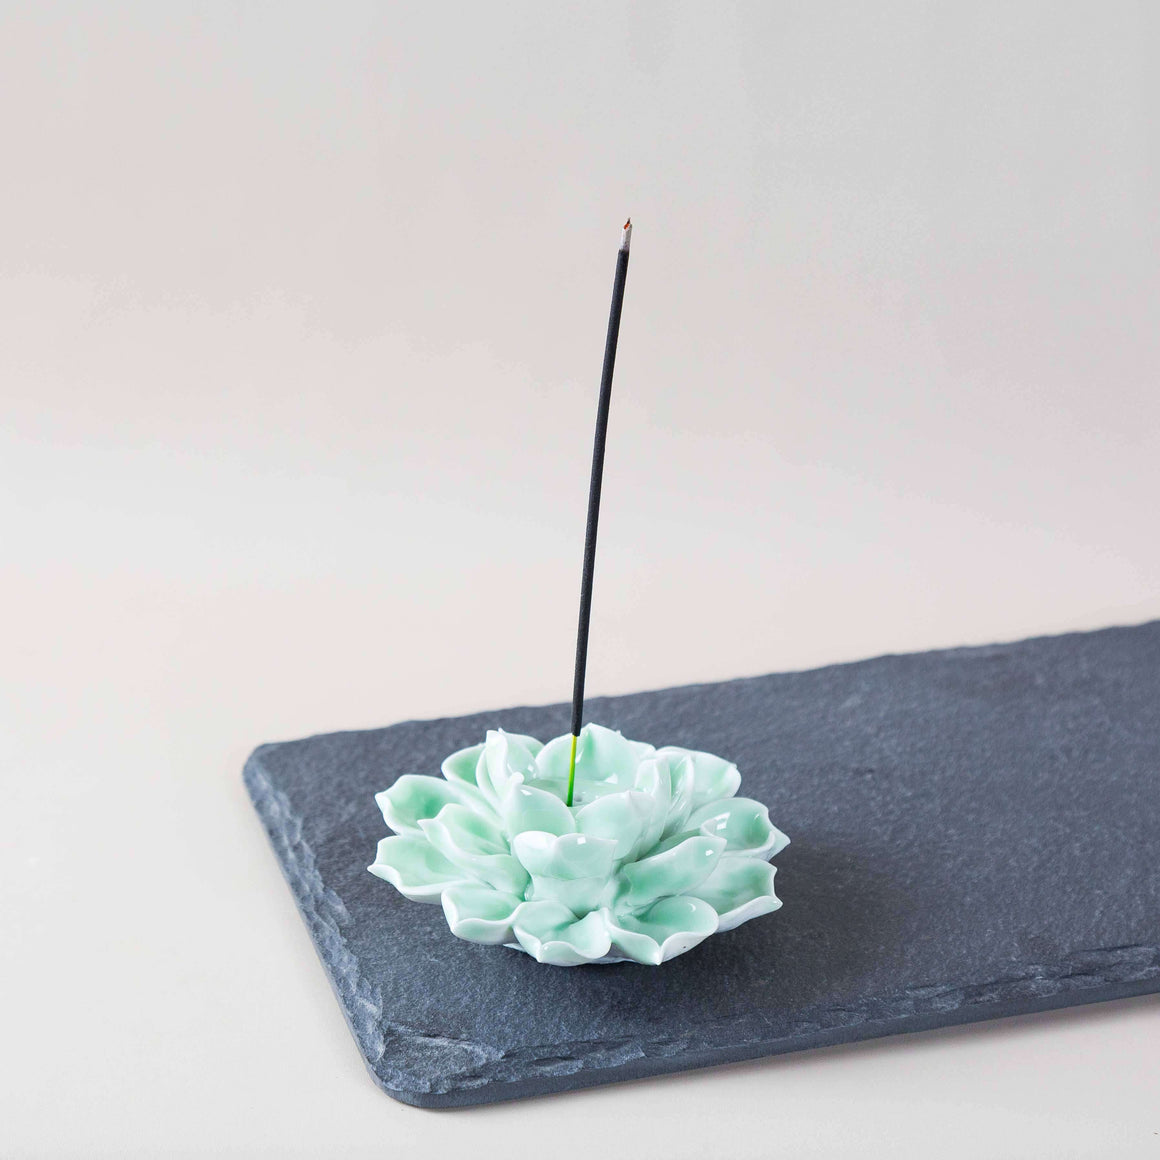 Flower Incense Holder